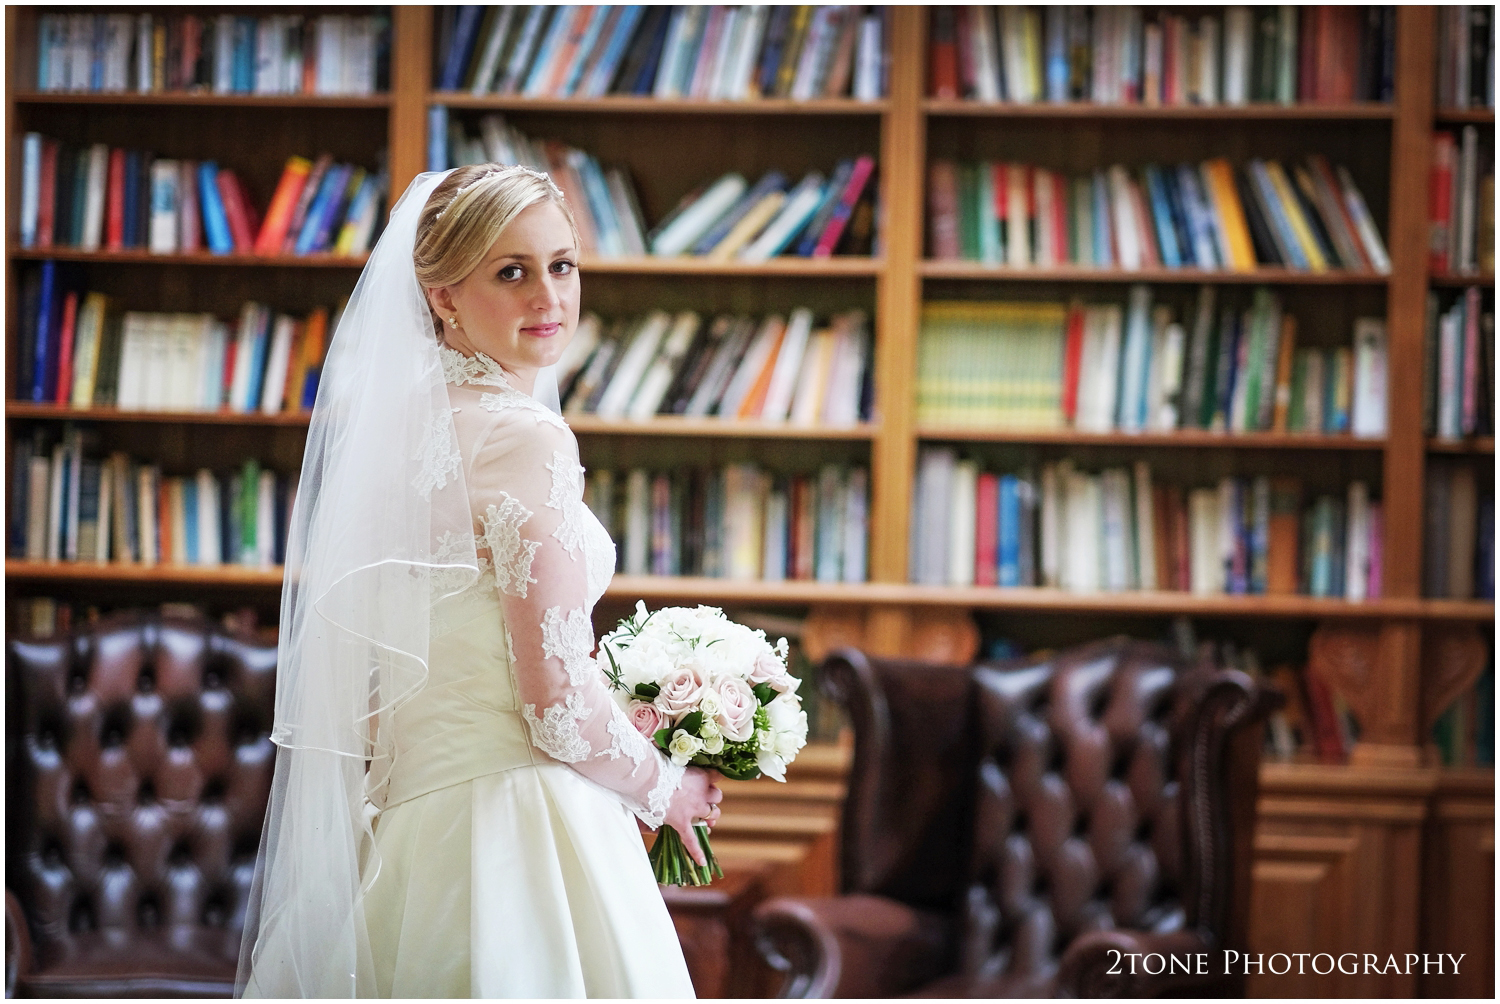 The library in Doxford Hall is another great spot for photography. The light is excellent in here, fantastic for portraiture.